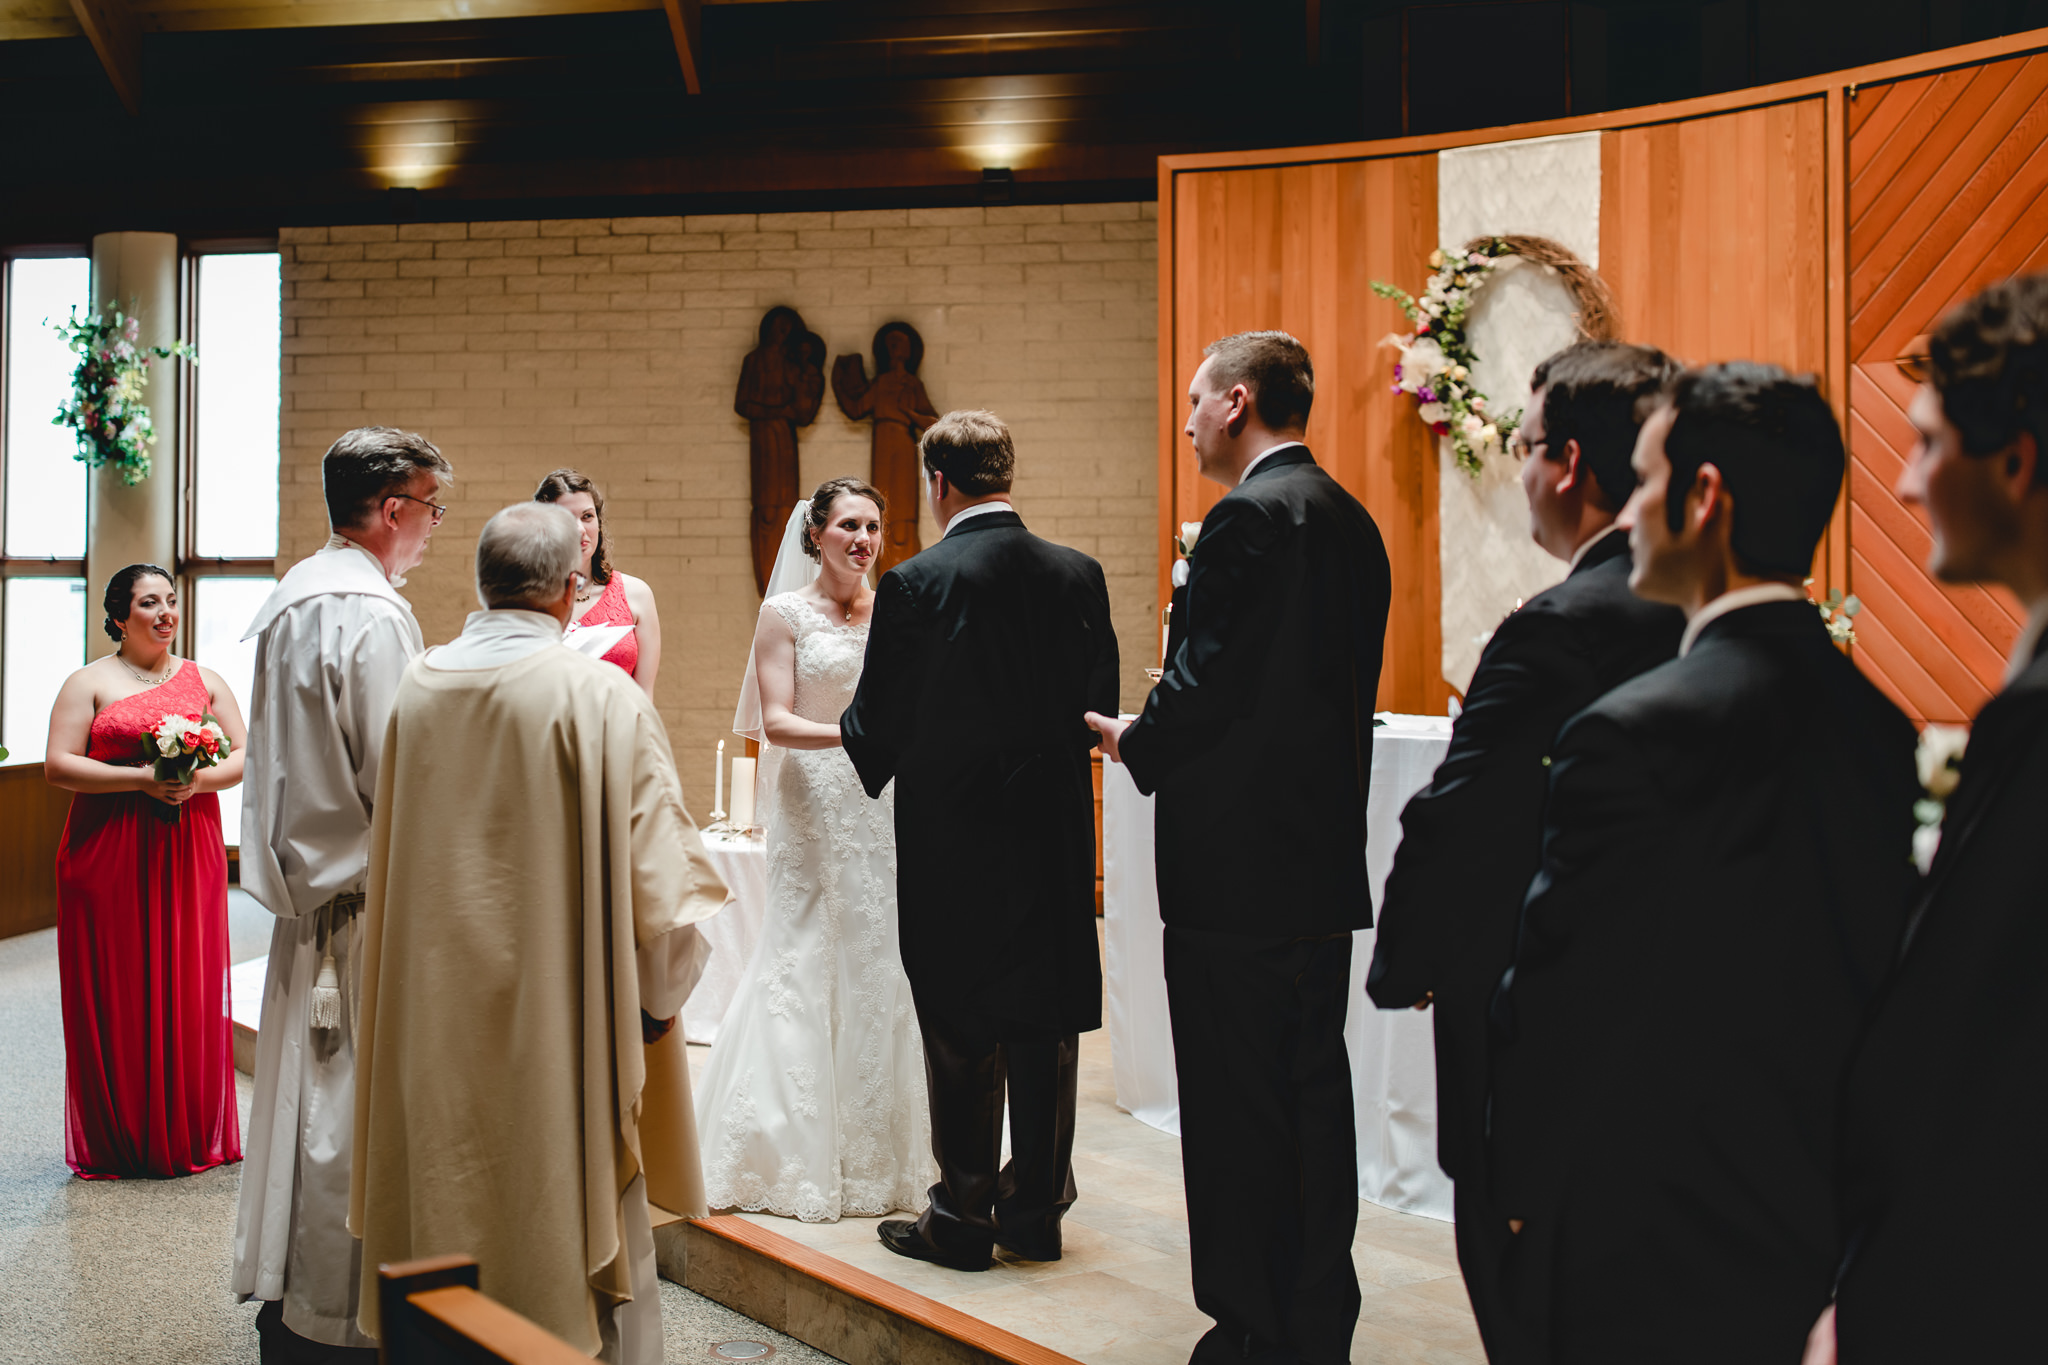 Bride says her vows during ceremony at St. John Neumann Church in Pittsburgh PA